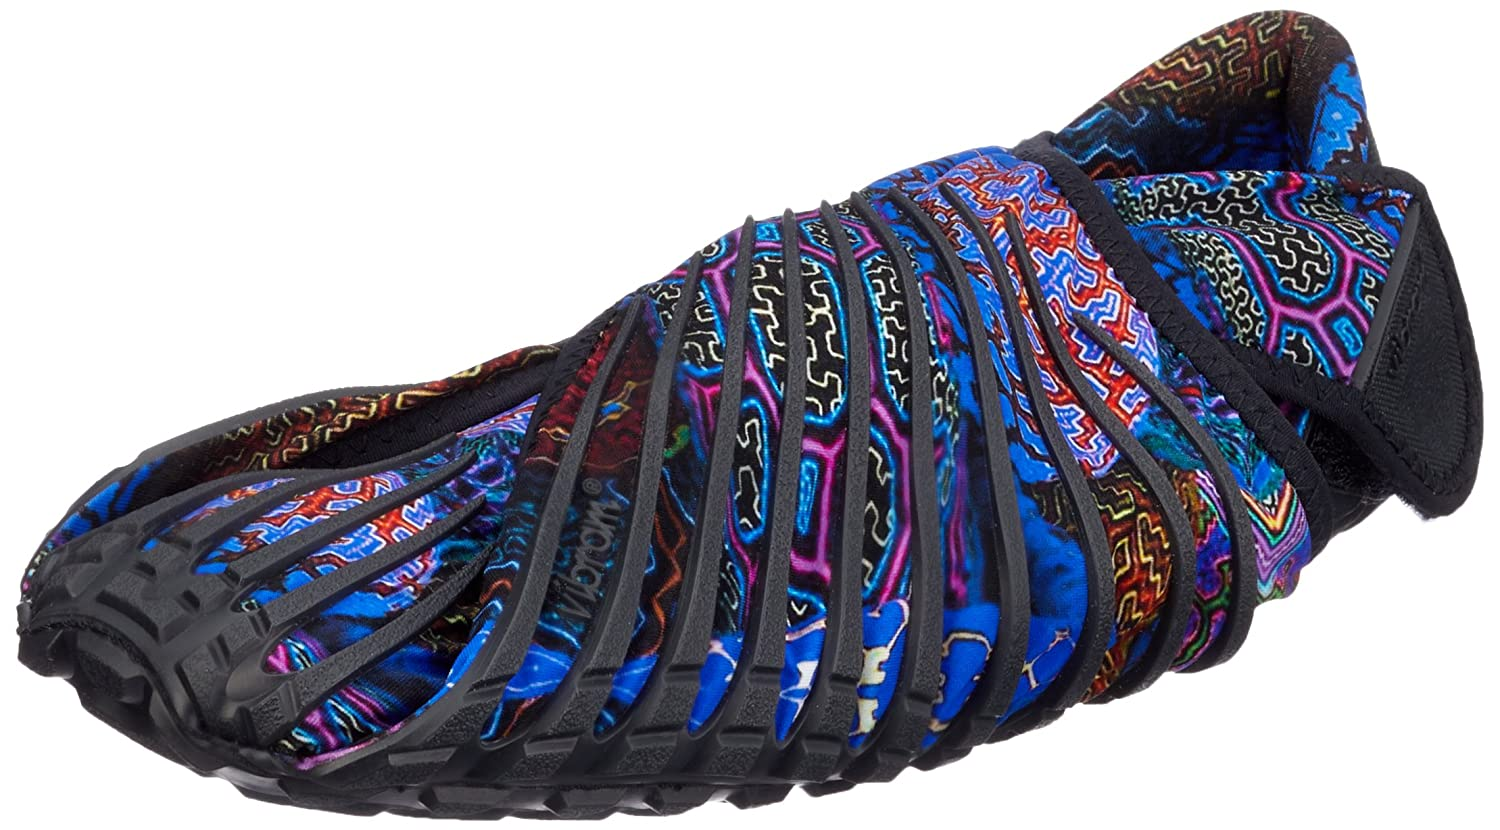 Vibram Men's and Women's Furoshiki Shipibo Sneaker B01HCEOXO0 EU:38-39/UK MAN:4-5.5.UK WOMAN:6-7/CM:23.5-24.5/US MAN:5-6.5/US WOMAN:7-8|Black/Multi